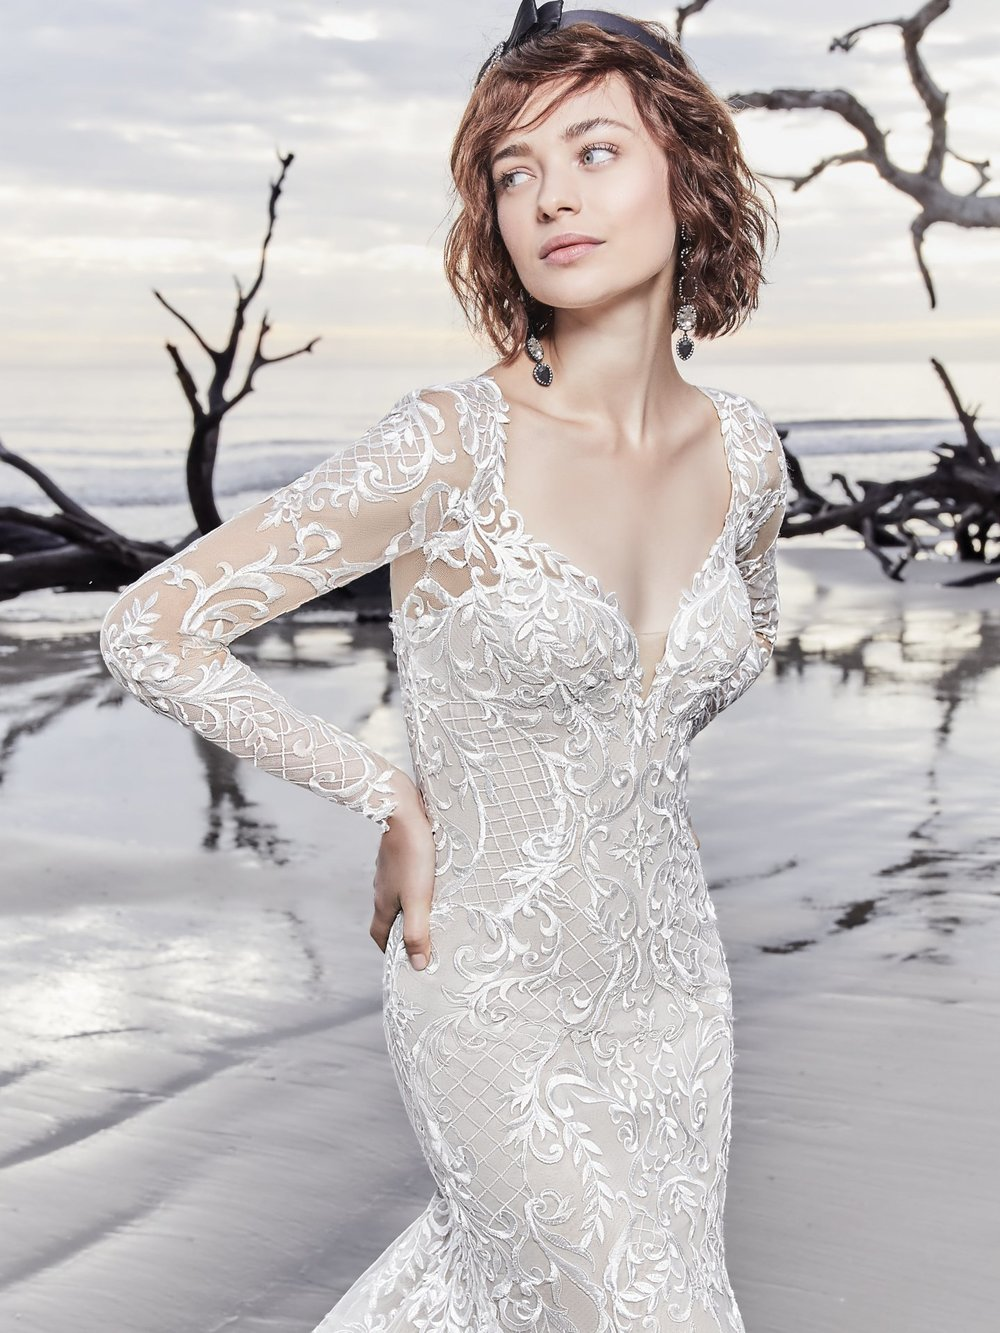 Long Sleeve Wedding Dresses | Inventory # 02307 | available at Bride To Be Couture | 6040 Fair Oaks Blvd. Carmichael, CA 95608 | 916.972.8223 | @bridetobecouture